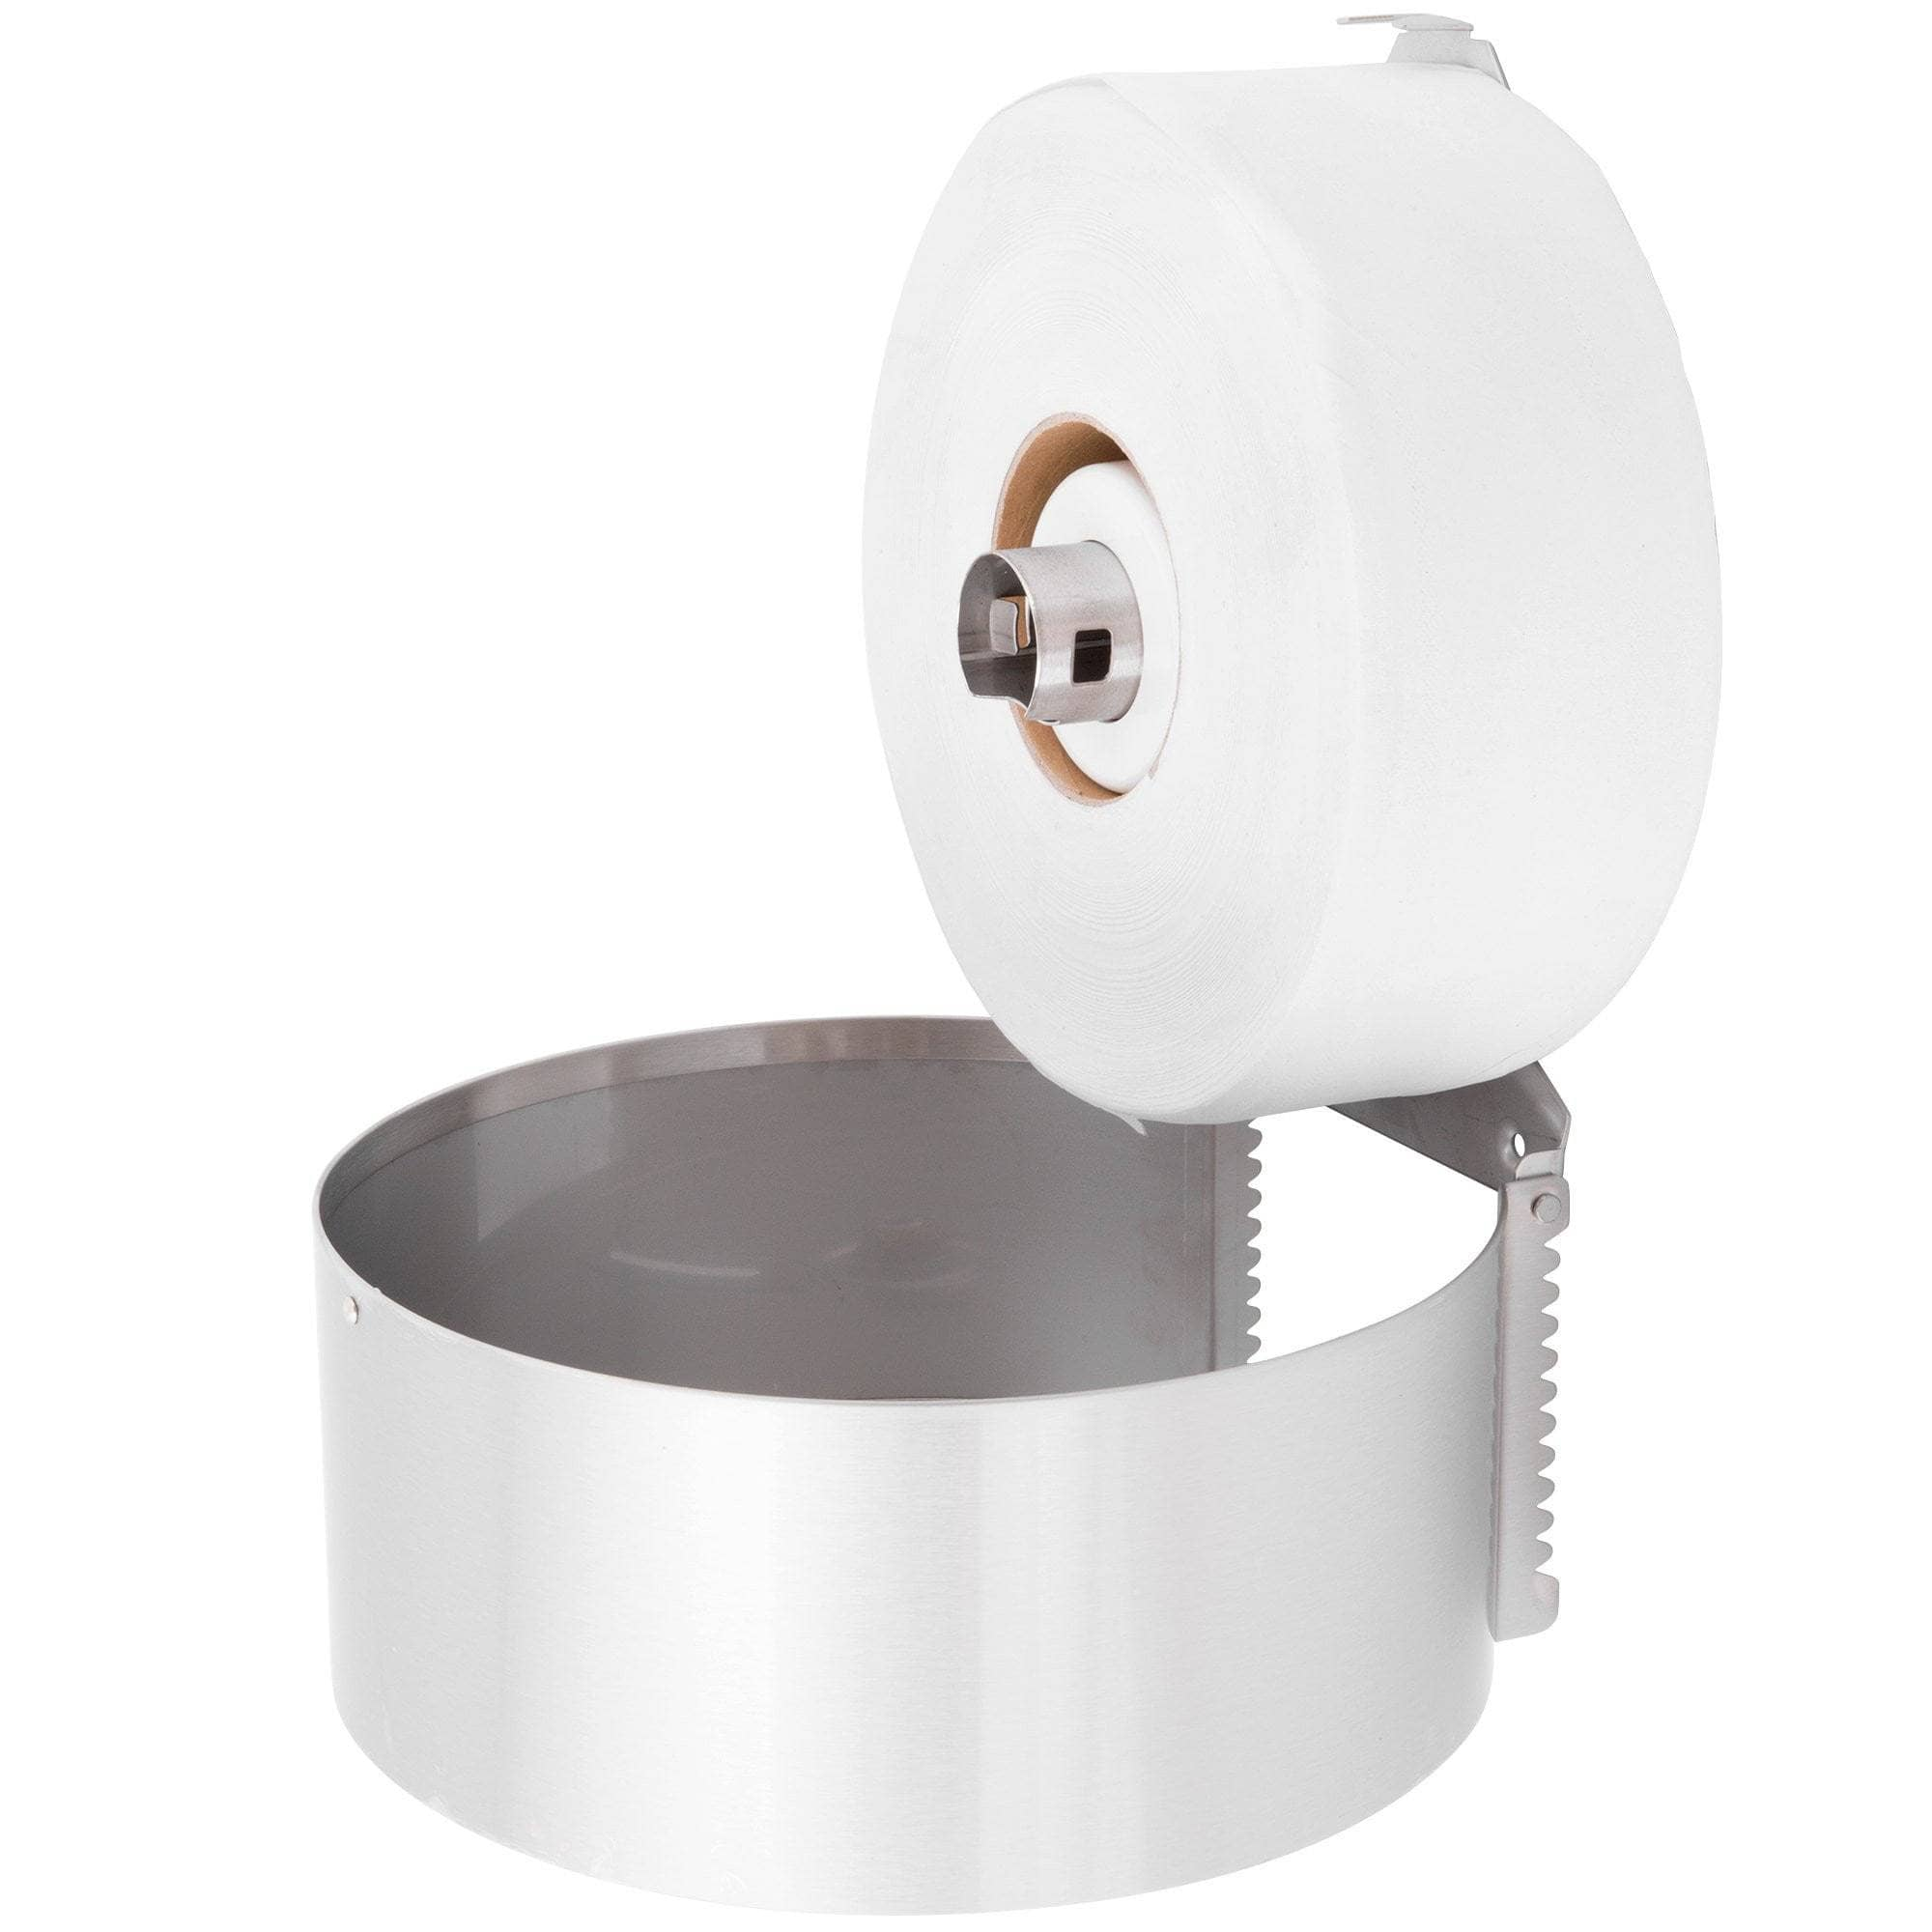 Bobrick B-2890 Commercial Toilet Tissue Dispenser, Surface-Mounted, Stainless Steel w/ Satin Finish - [product_type] - Bobrick